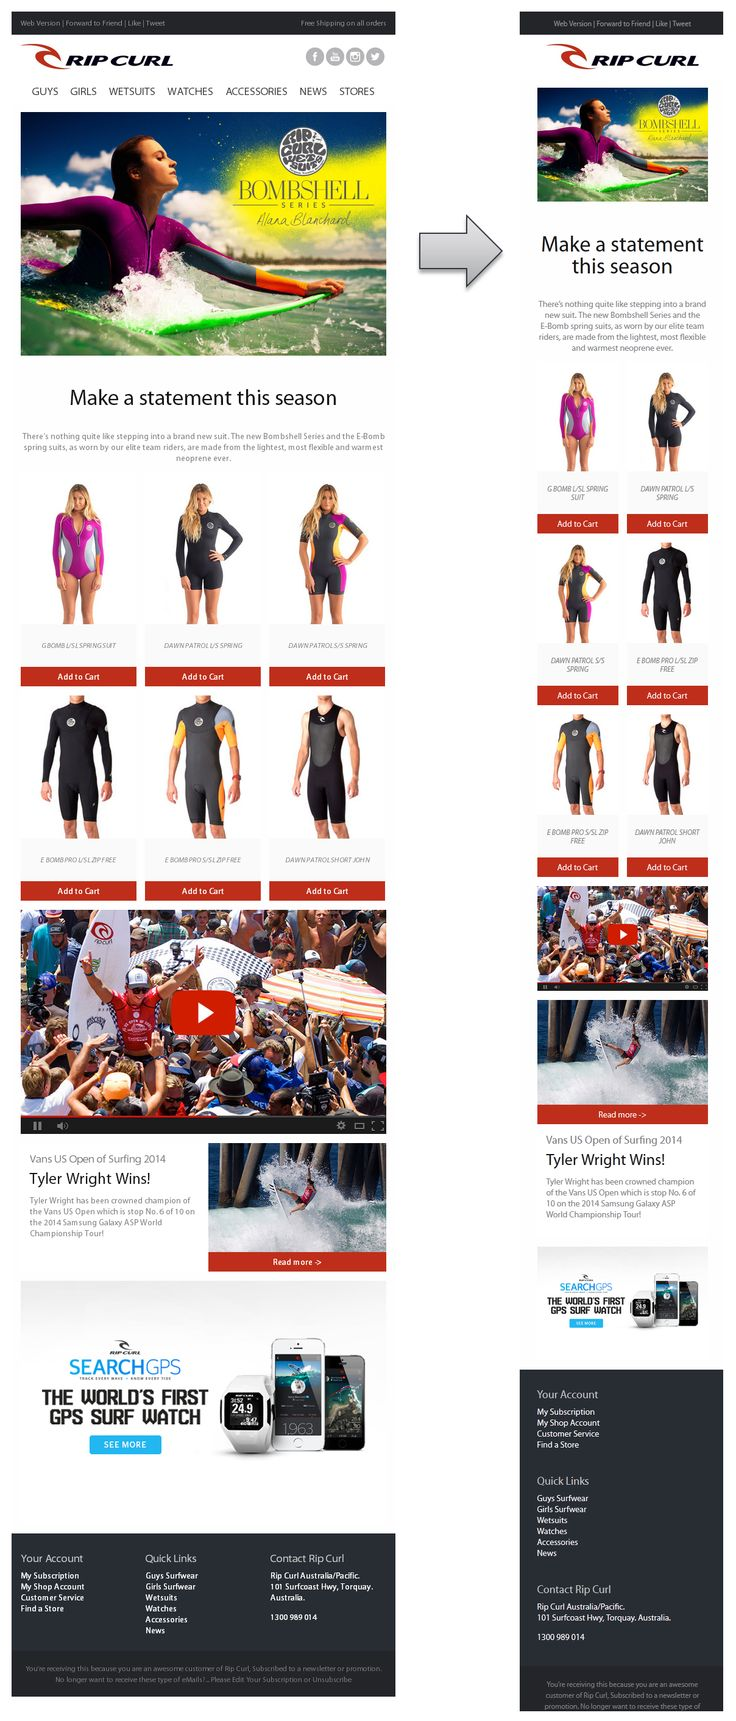 best images about responsive email design red fully sick responsive email design from rip curl responsivedesign responsiveemaildesign